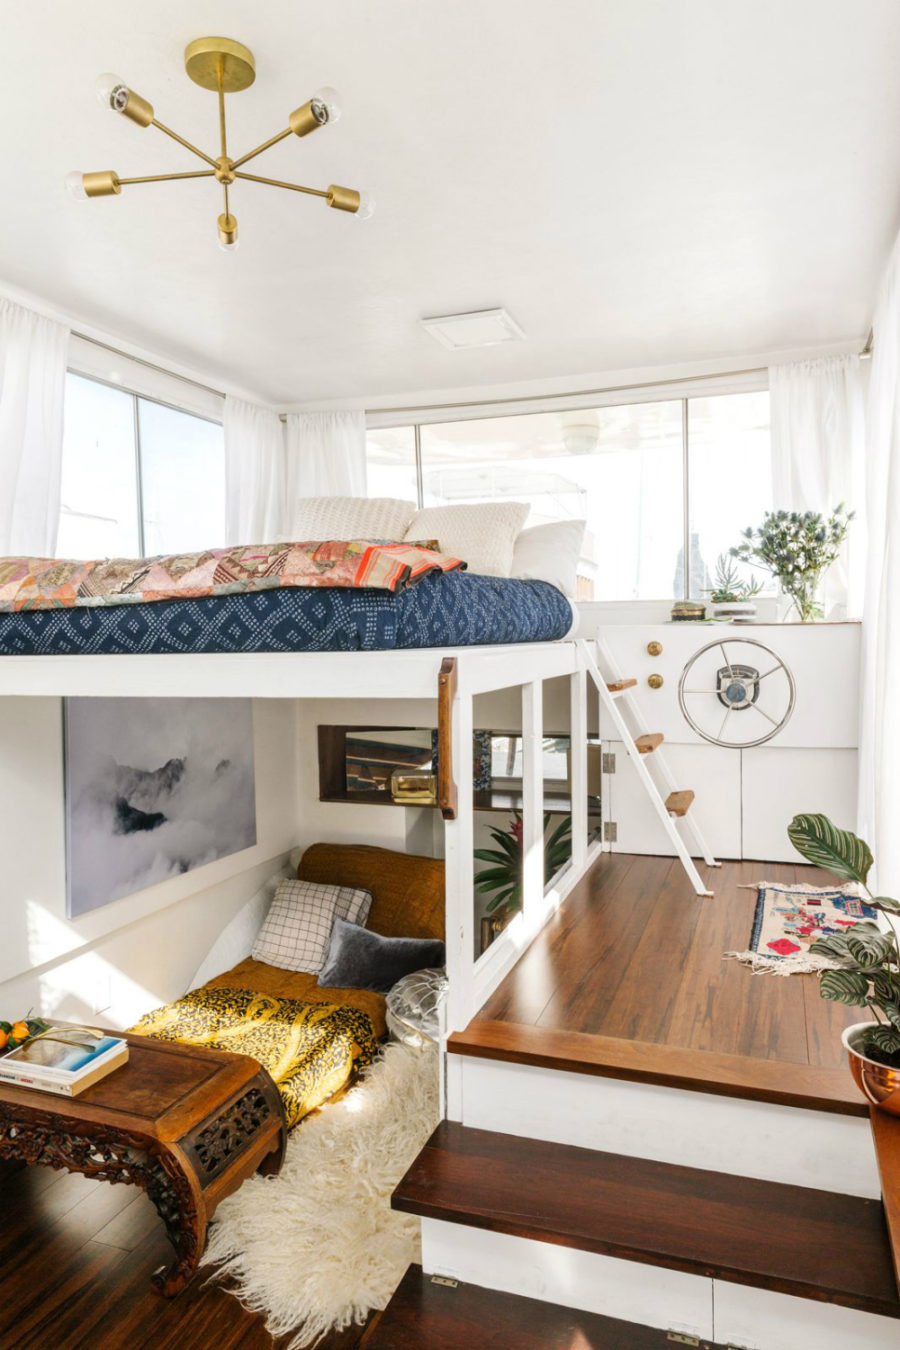 Boat bedroom